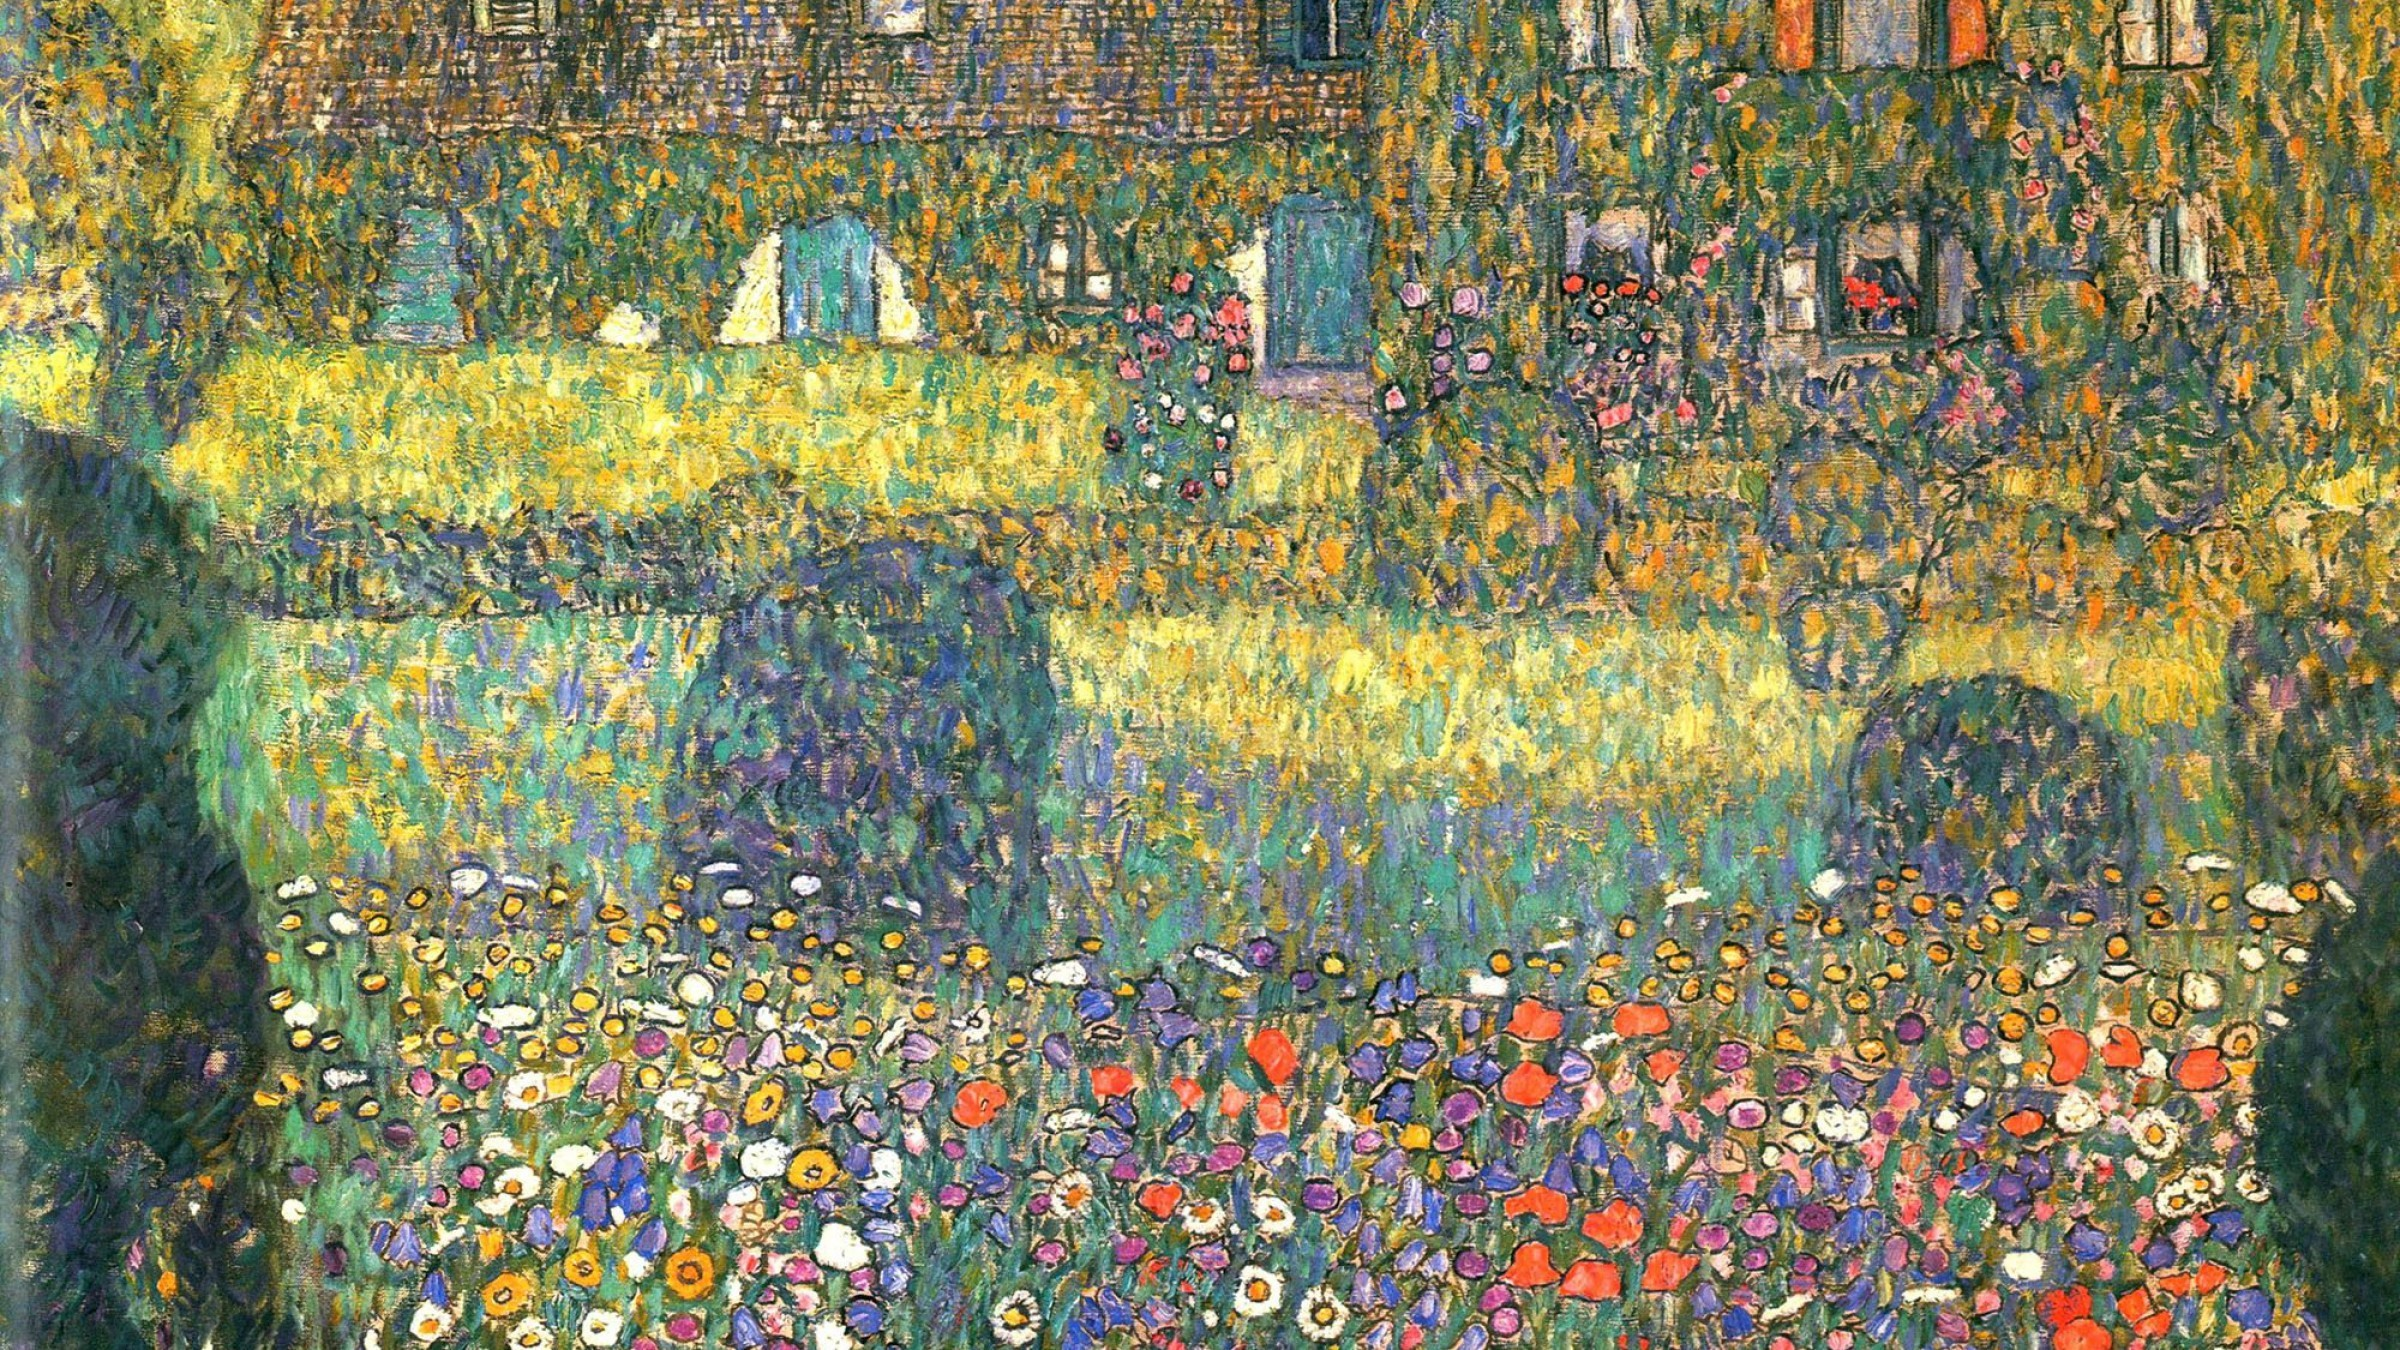 2400x1350 Painting of Gustav Klimt - Backyard